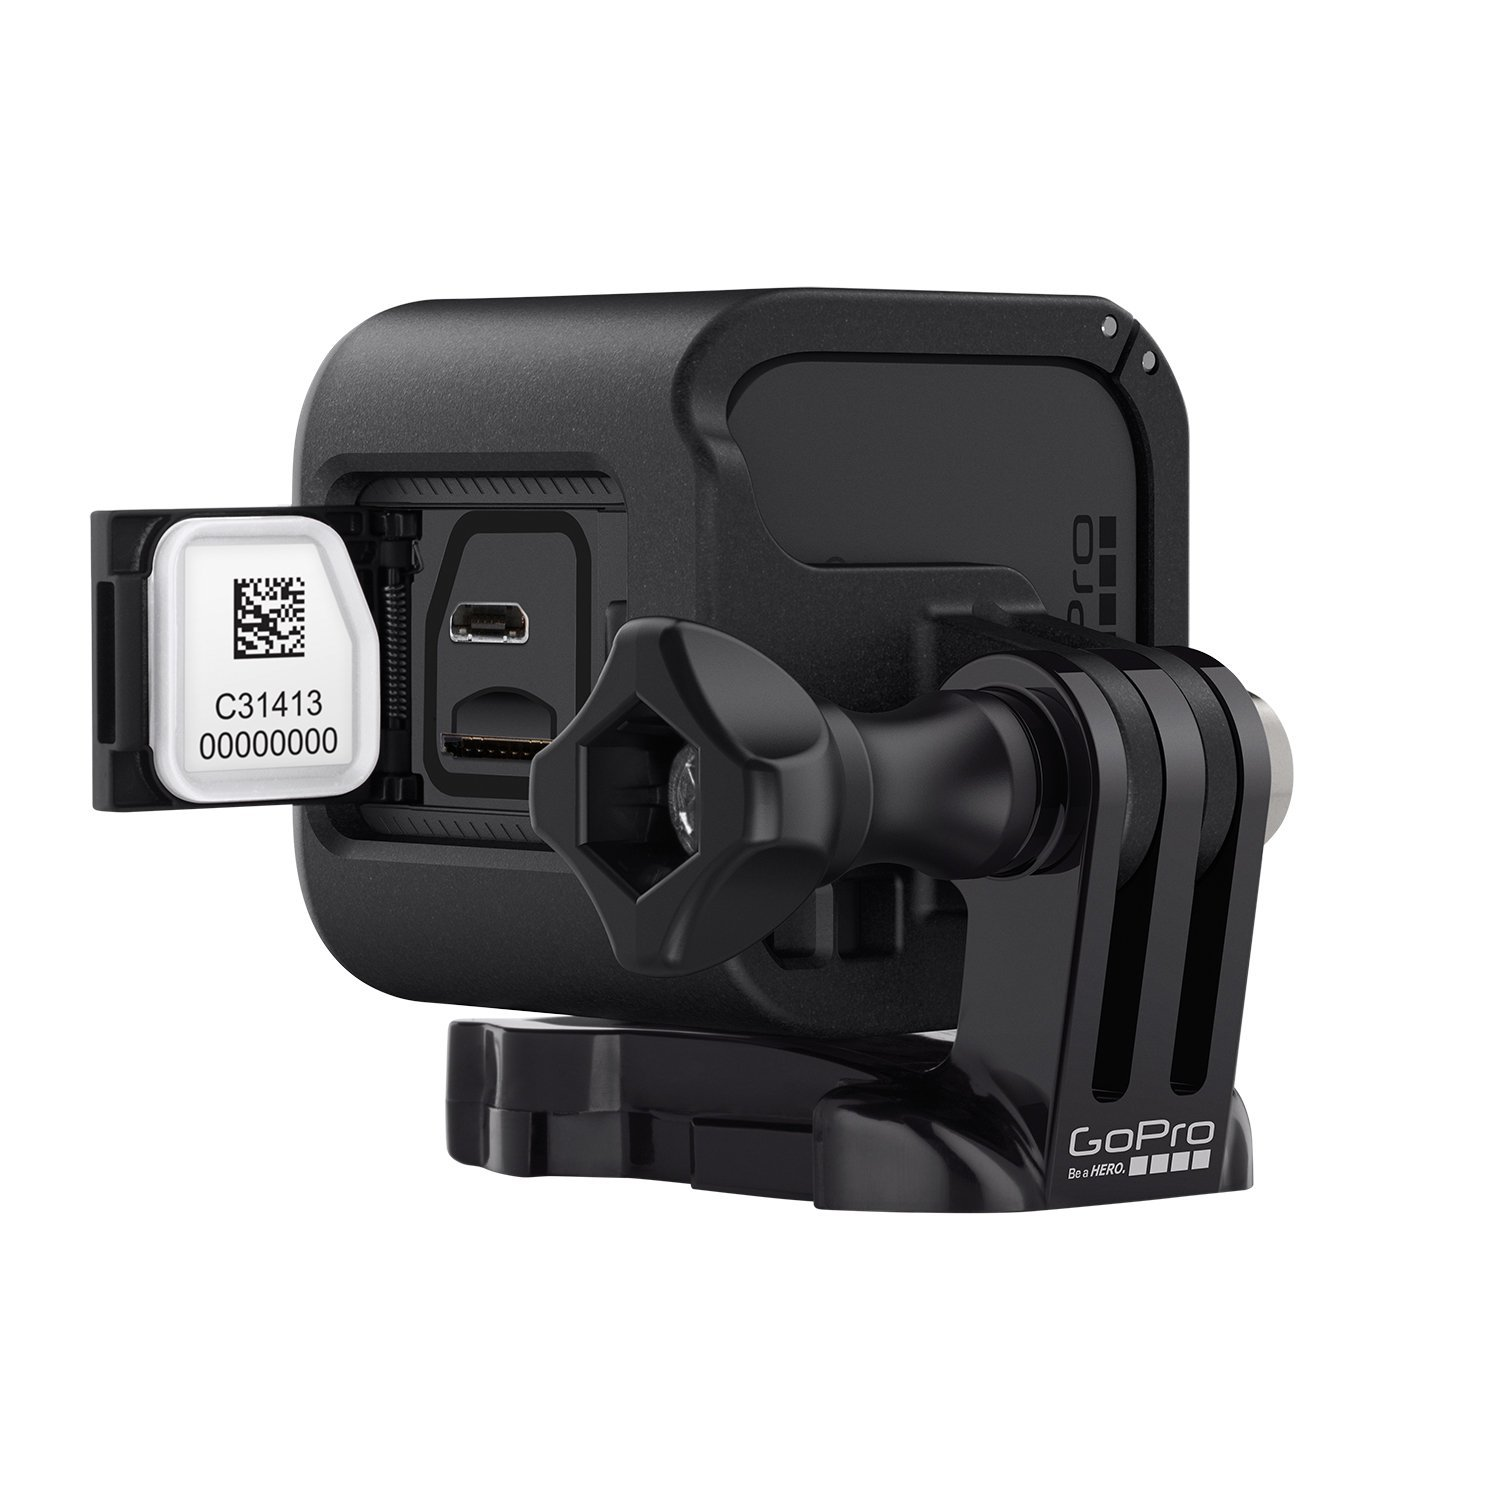 hero 4 session vs other gopros sportscamonline. Black Bedroom Furniture Sets. Home Design Ideas